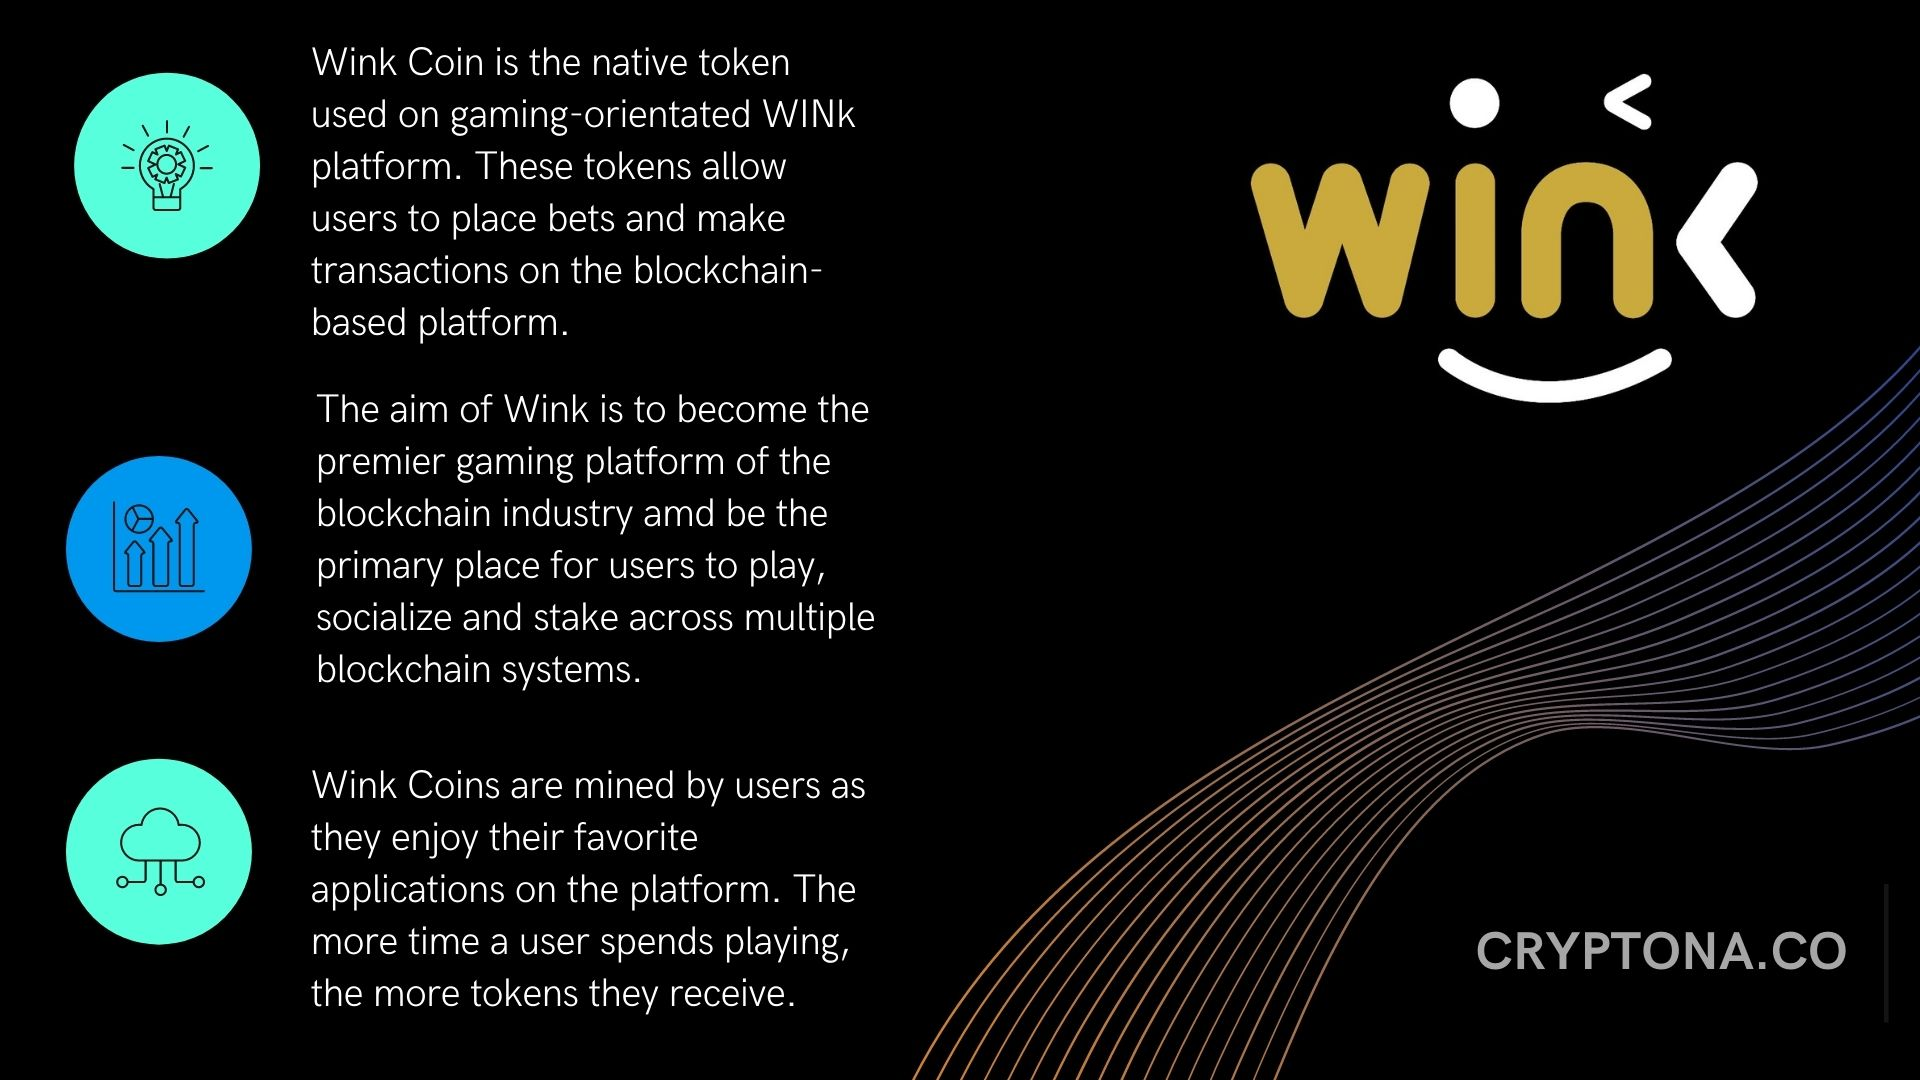 What is Wink Coin?